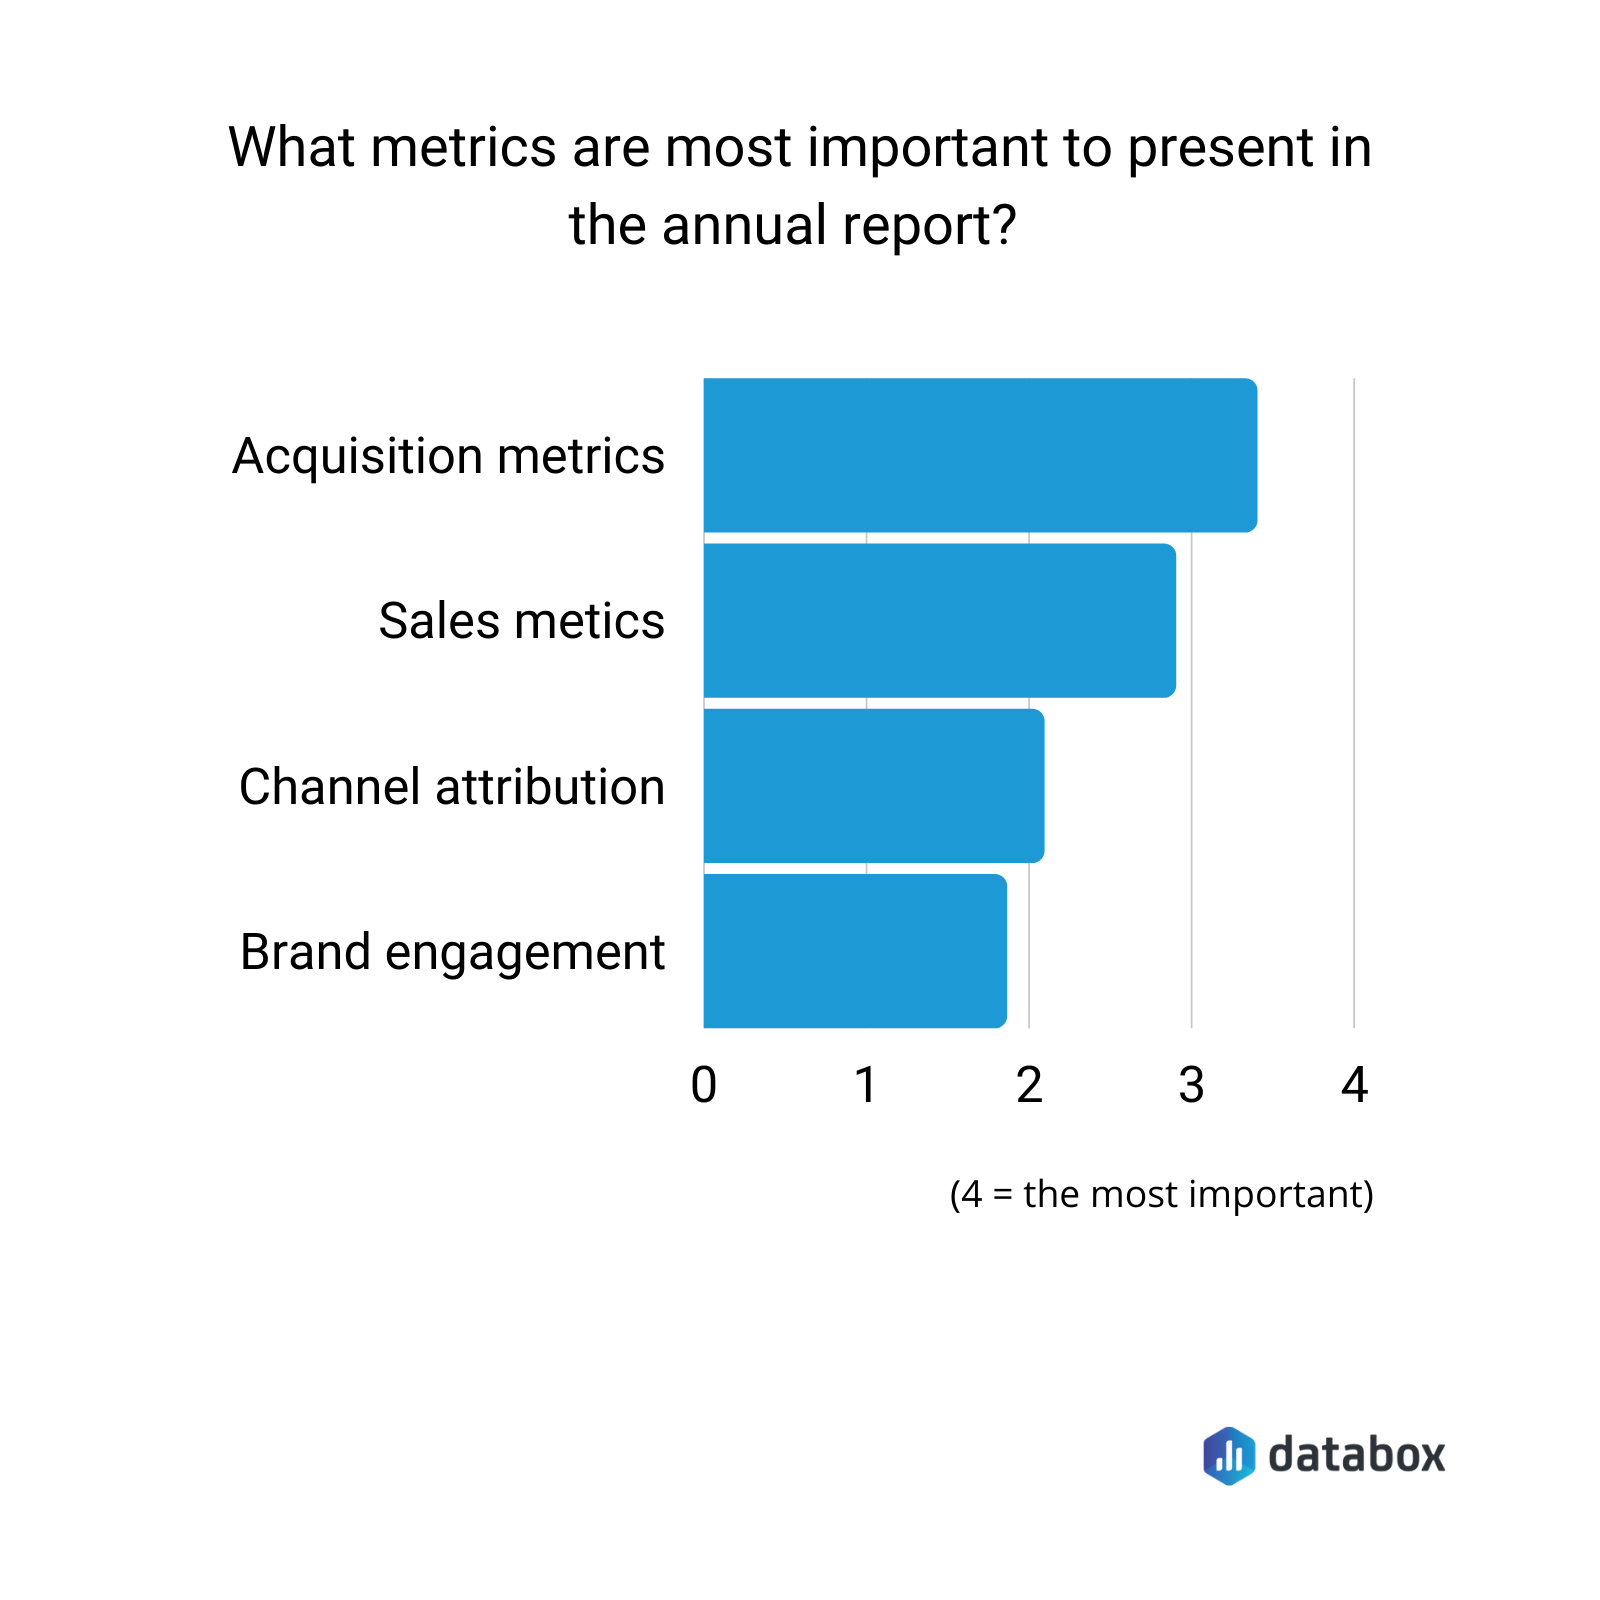 top 4 metrics to include in an annual marketing report